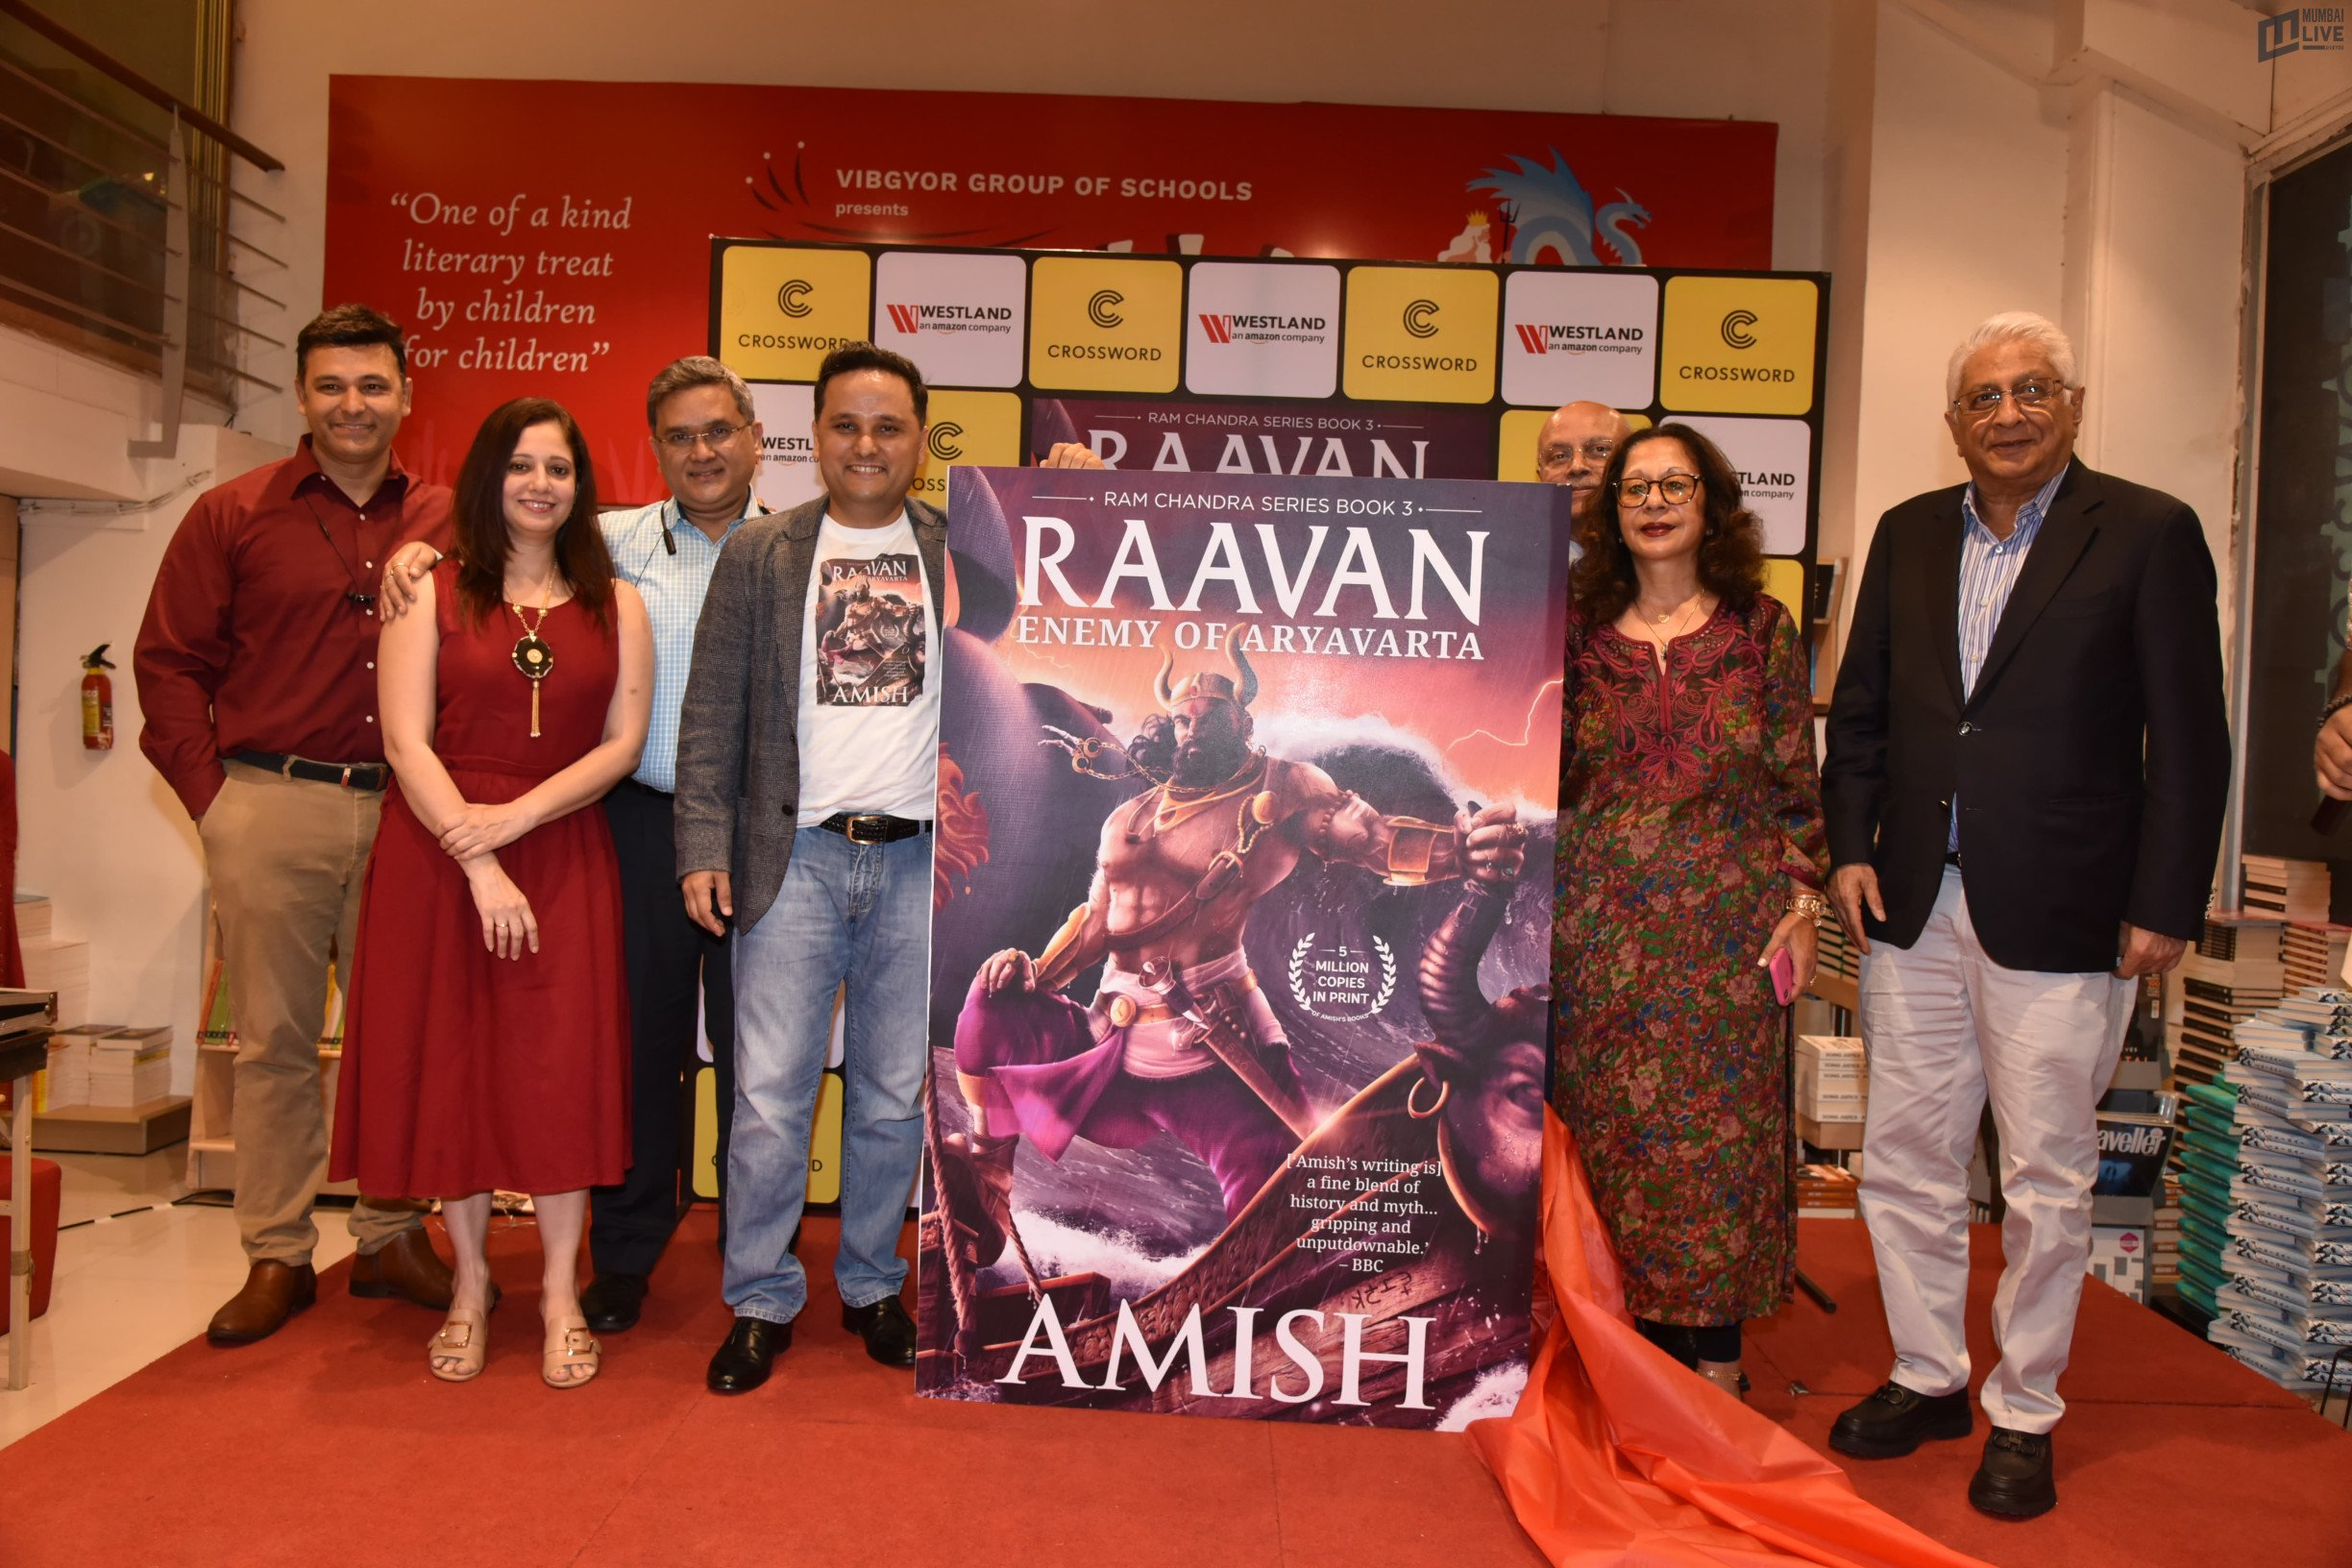 Author Amish releases his much-awaited book Raavan - Enemy Of Aryavarta in Mumbai